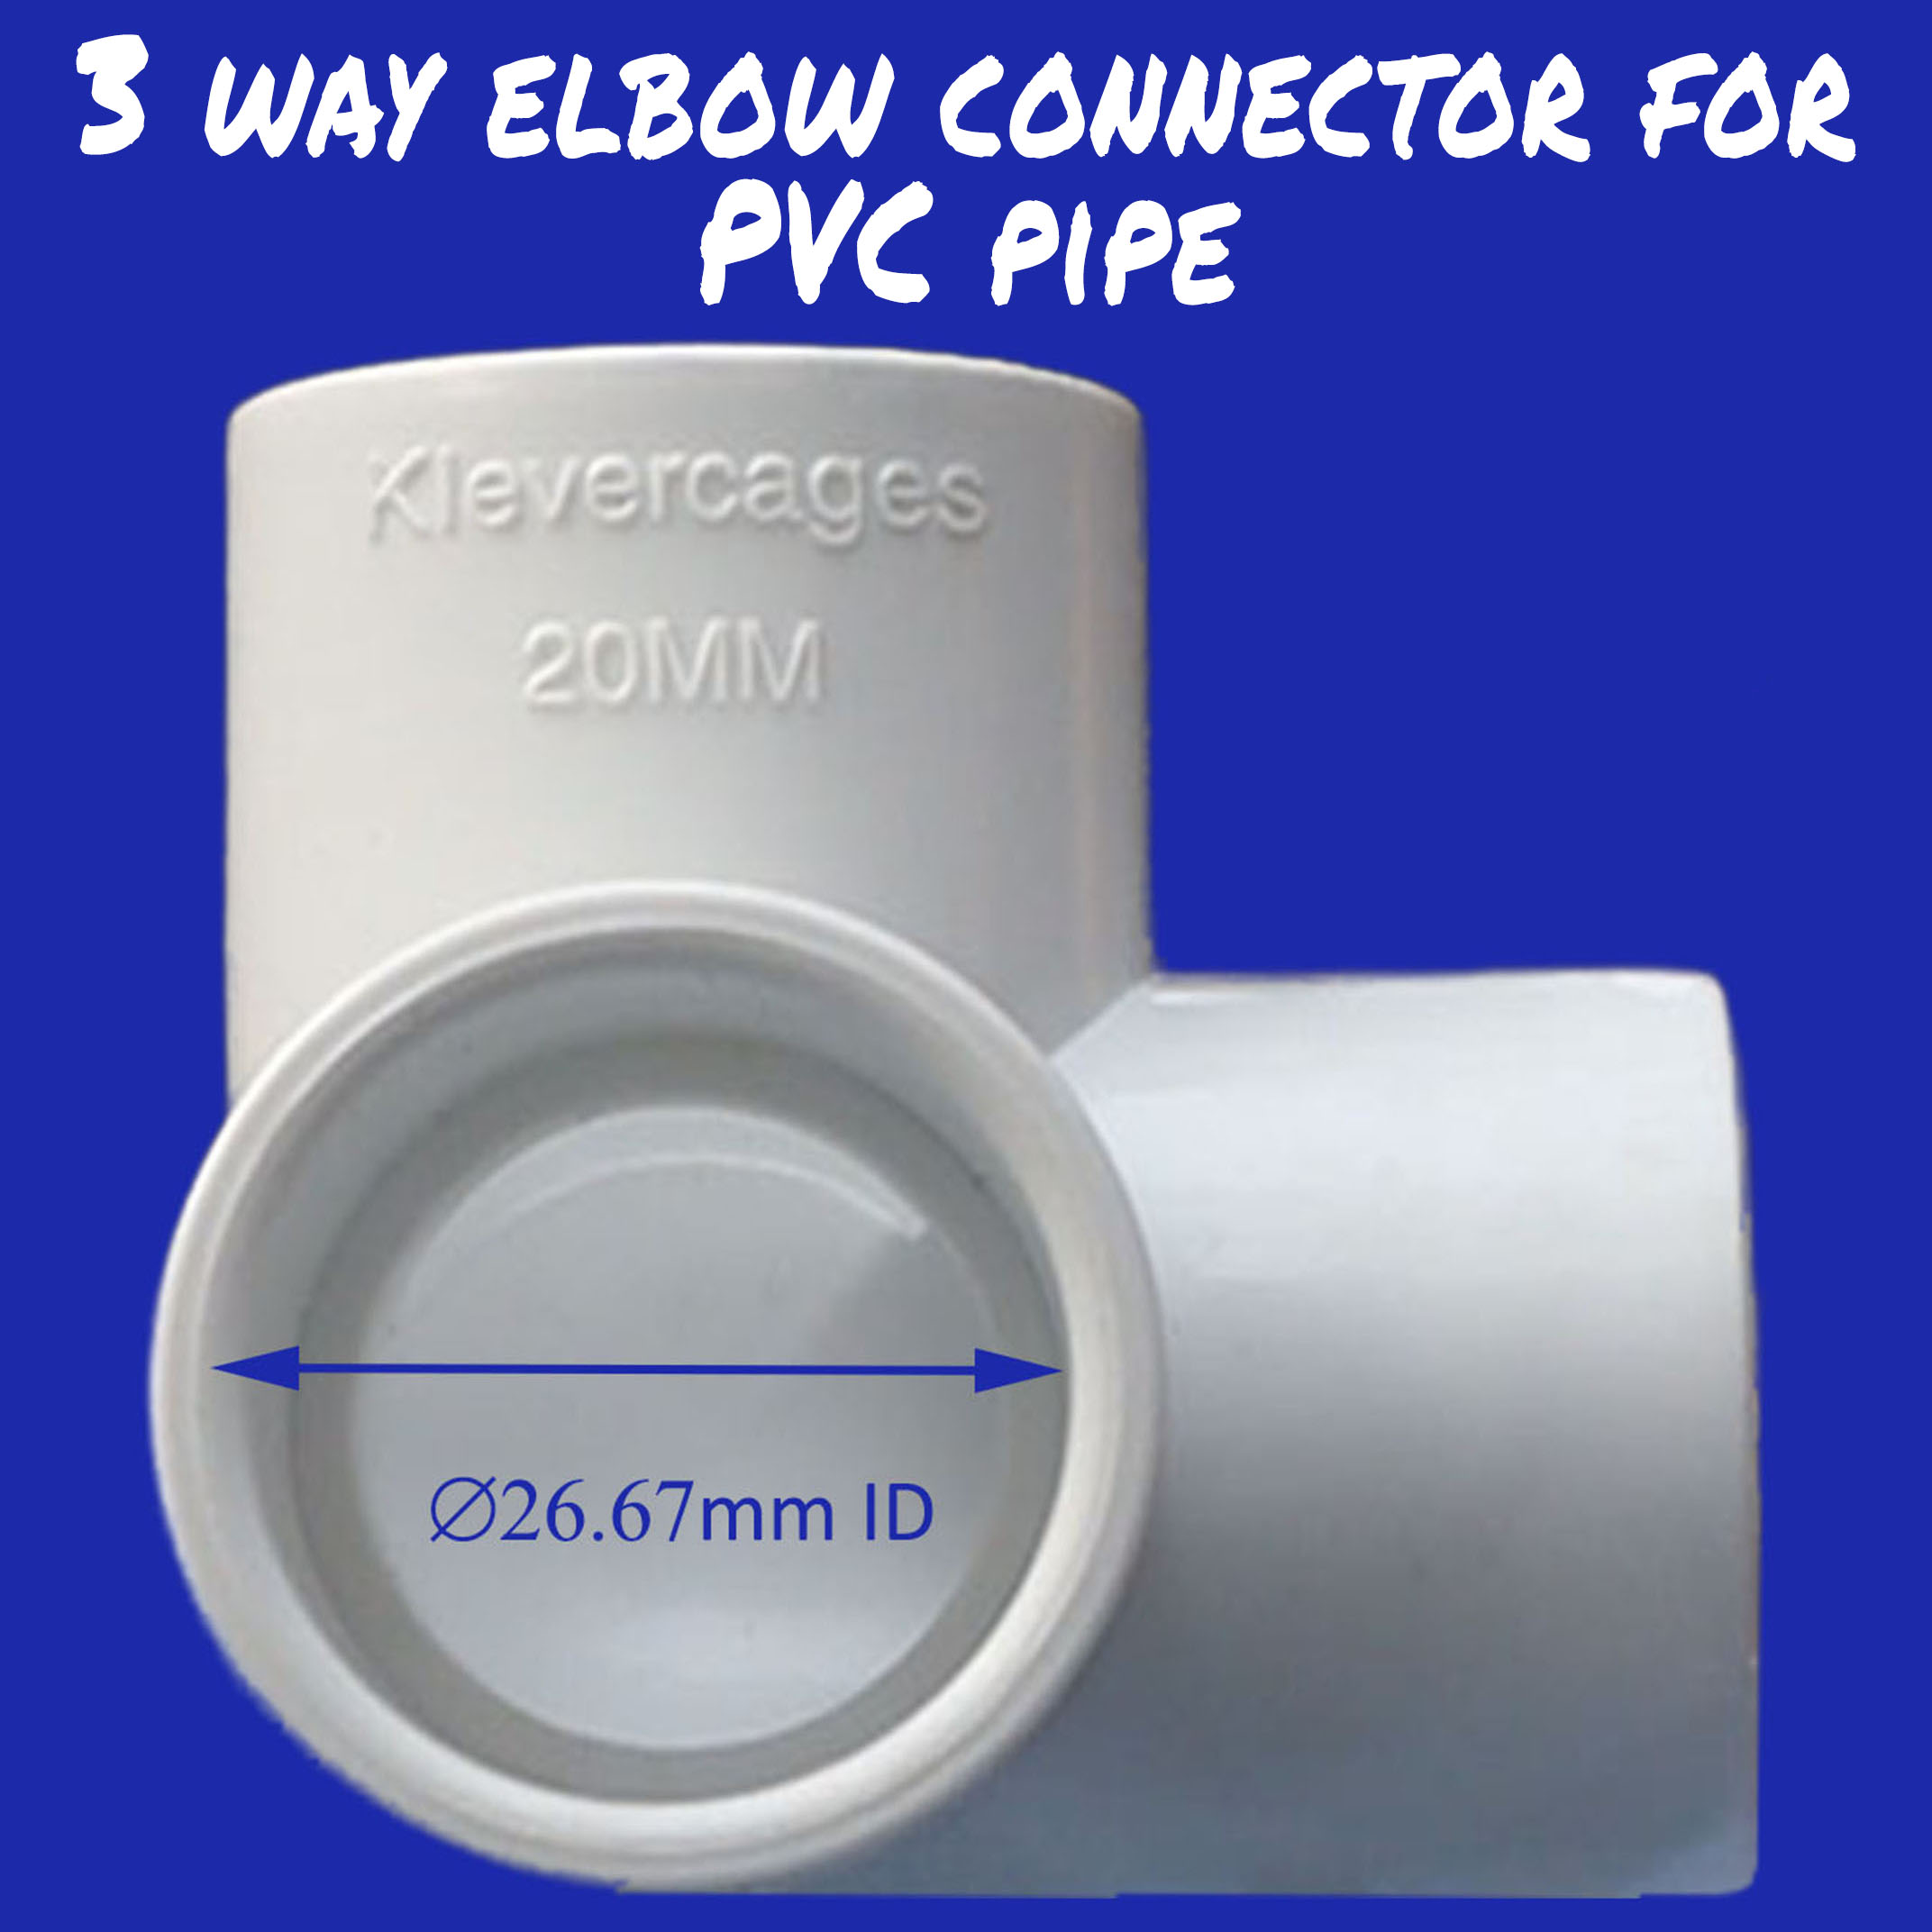 20mm 3 way connector to fit PVC pipe with an outside diametre of 26.67mm from Klever Cages. Use this for your next PVC project